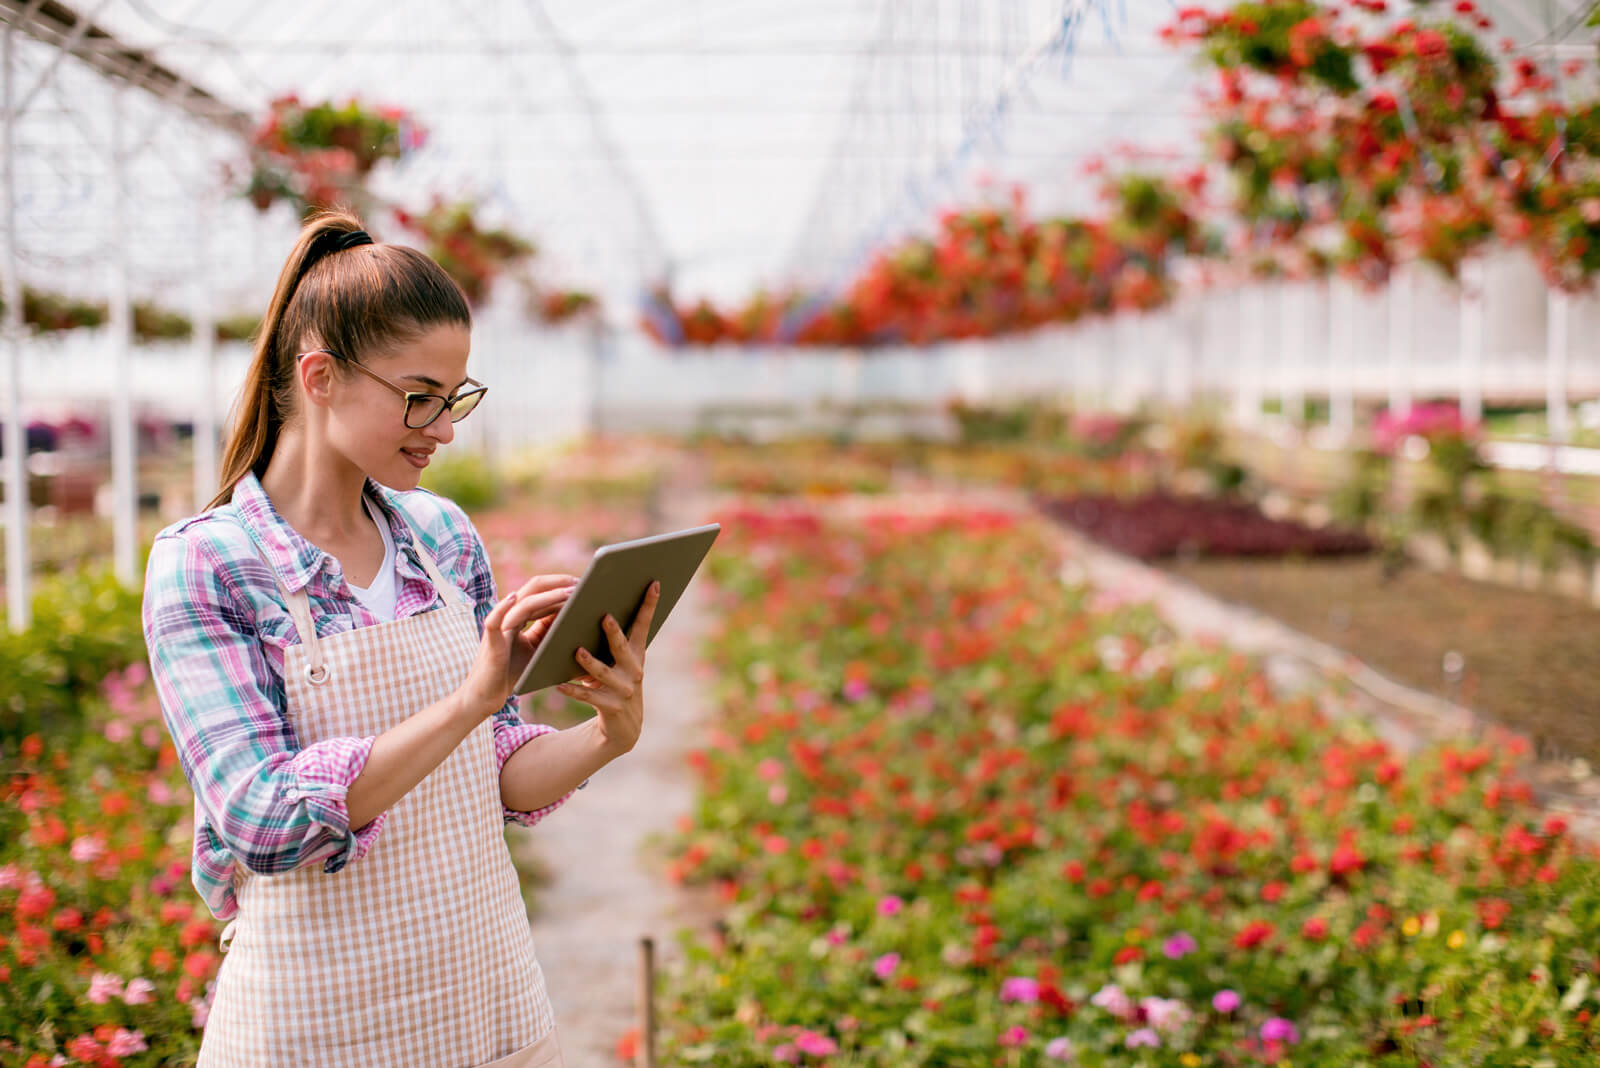 A young woman with a tablet in a greenhouse